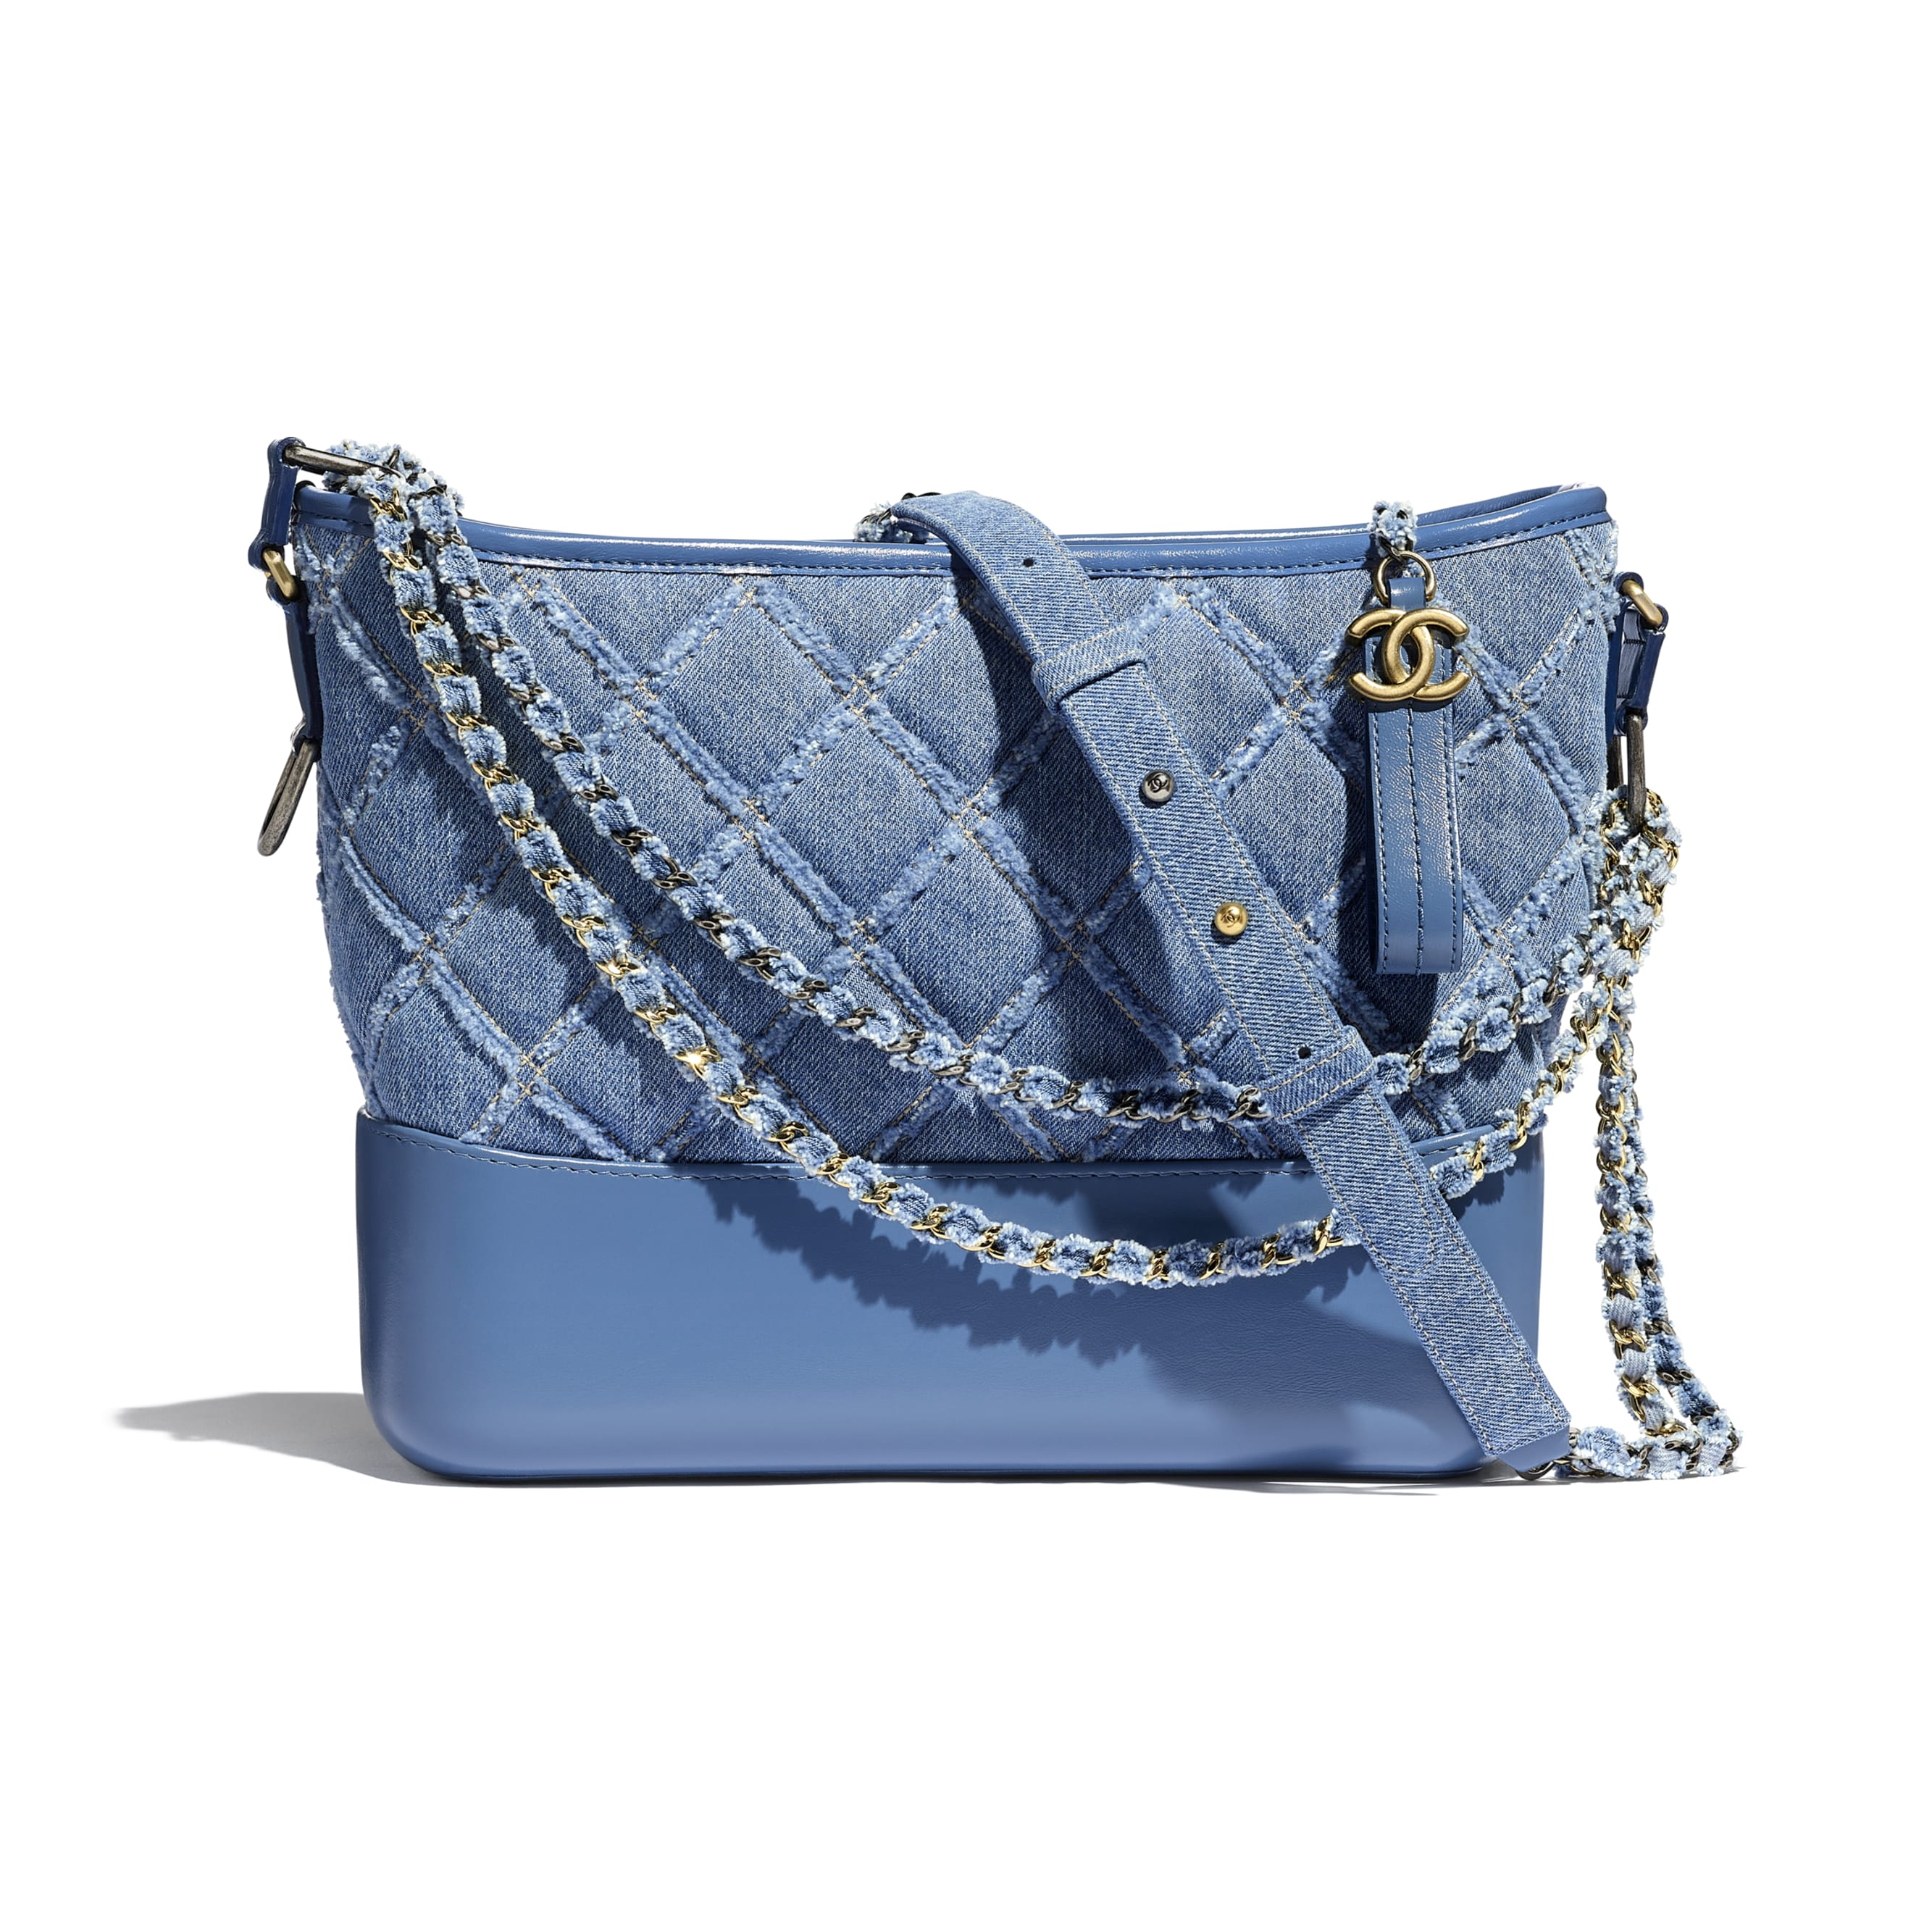 CHANEL'S GABRIELLE Large Hobo Bag - Blue - Denim, Calfskin, Gold-Tone, Silver-Tone & Ruthenium-Finish Metal - CHANEL - Default view - see standard sized version